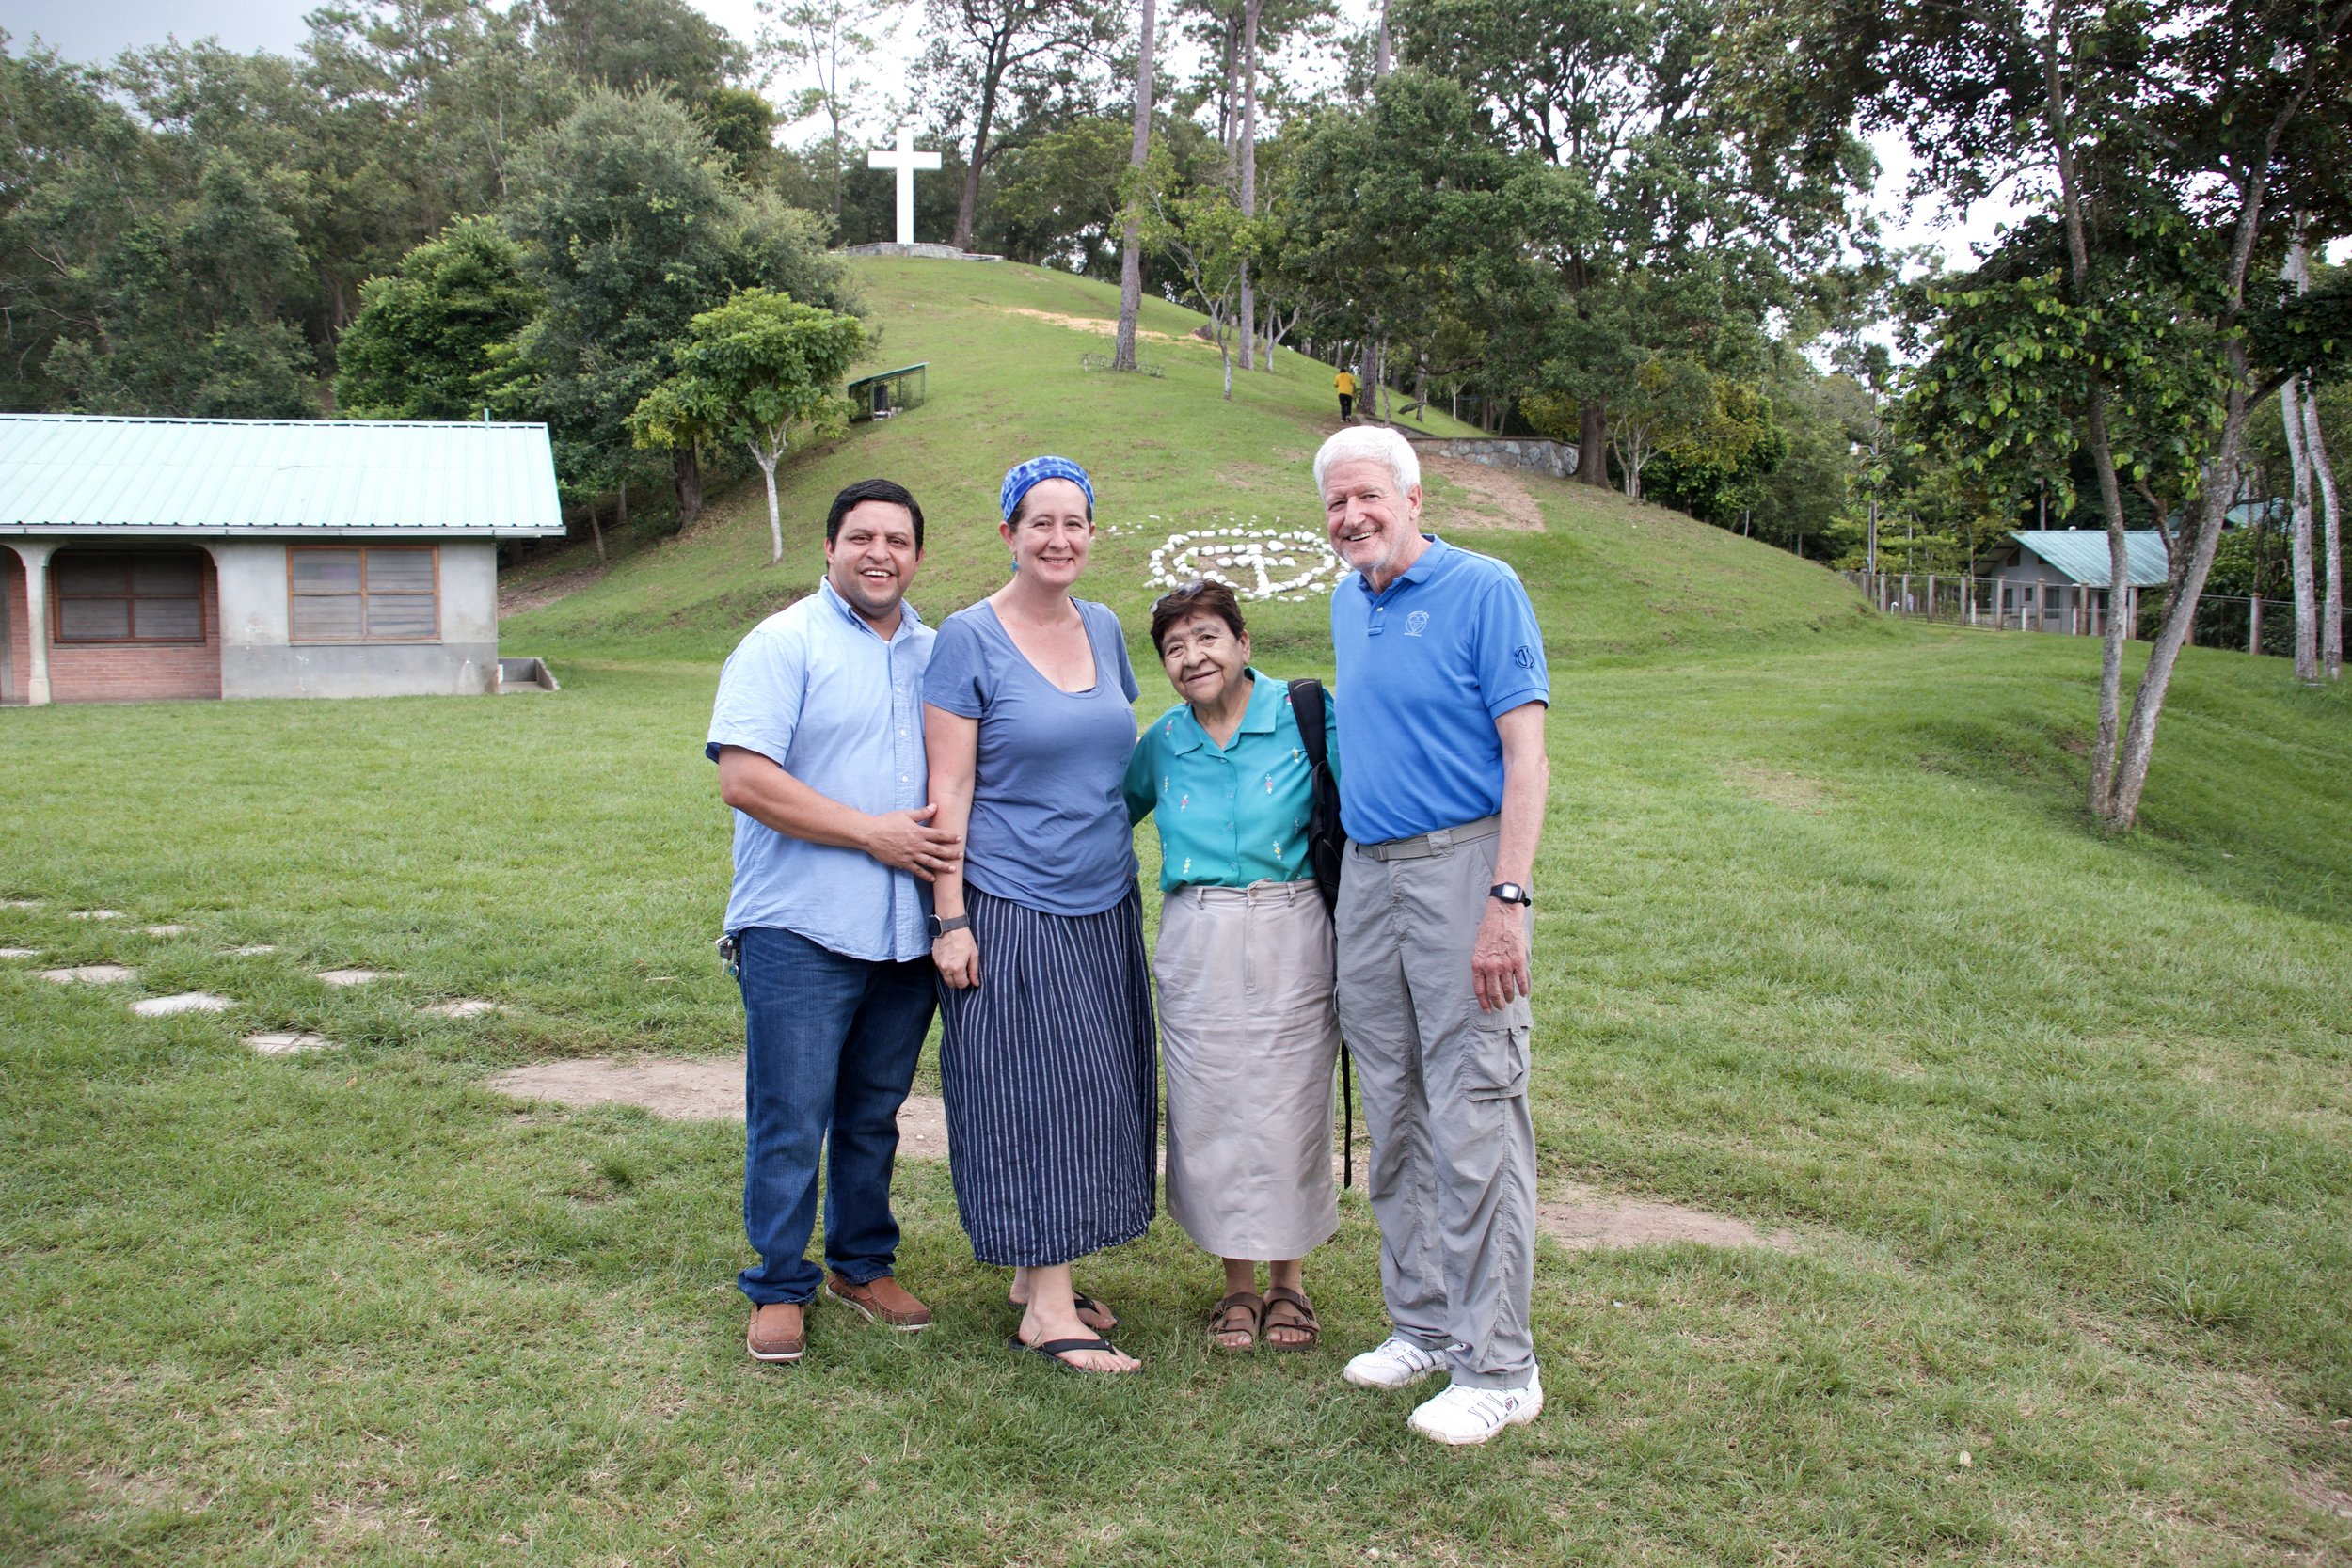 Sister Teresita (second from the right) on her most recent to Amigos de Jesús in October 2017, pictured with Co-Directors of Operations, Wilson and Amy Escoto, and Co-Founder and President of Amigos de Jesús, Father Dennis O'Donnell.